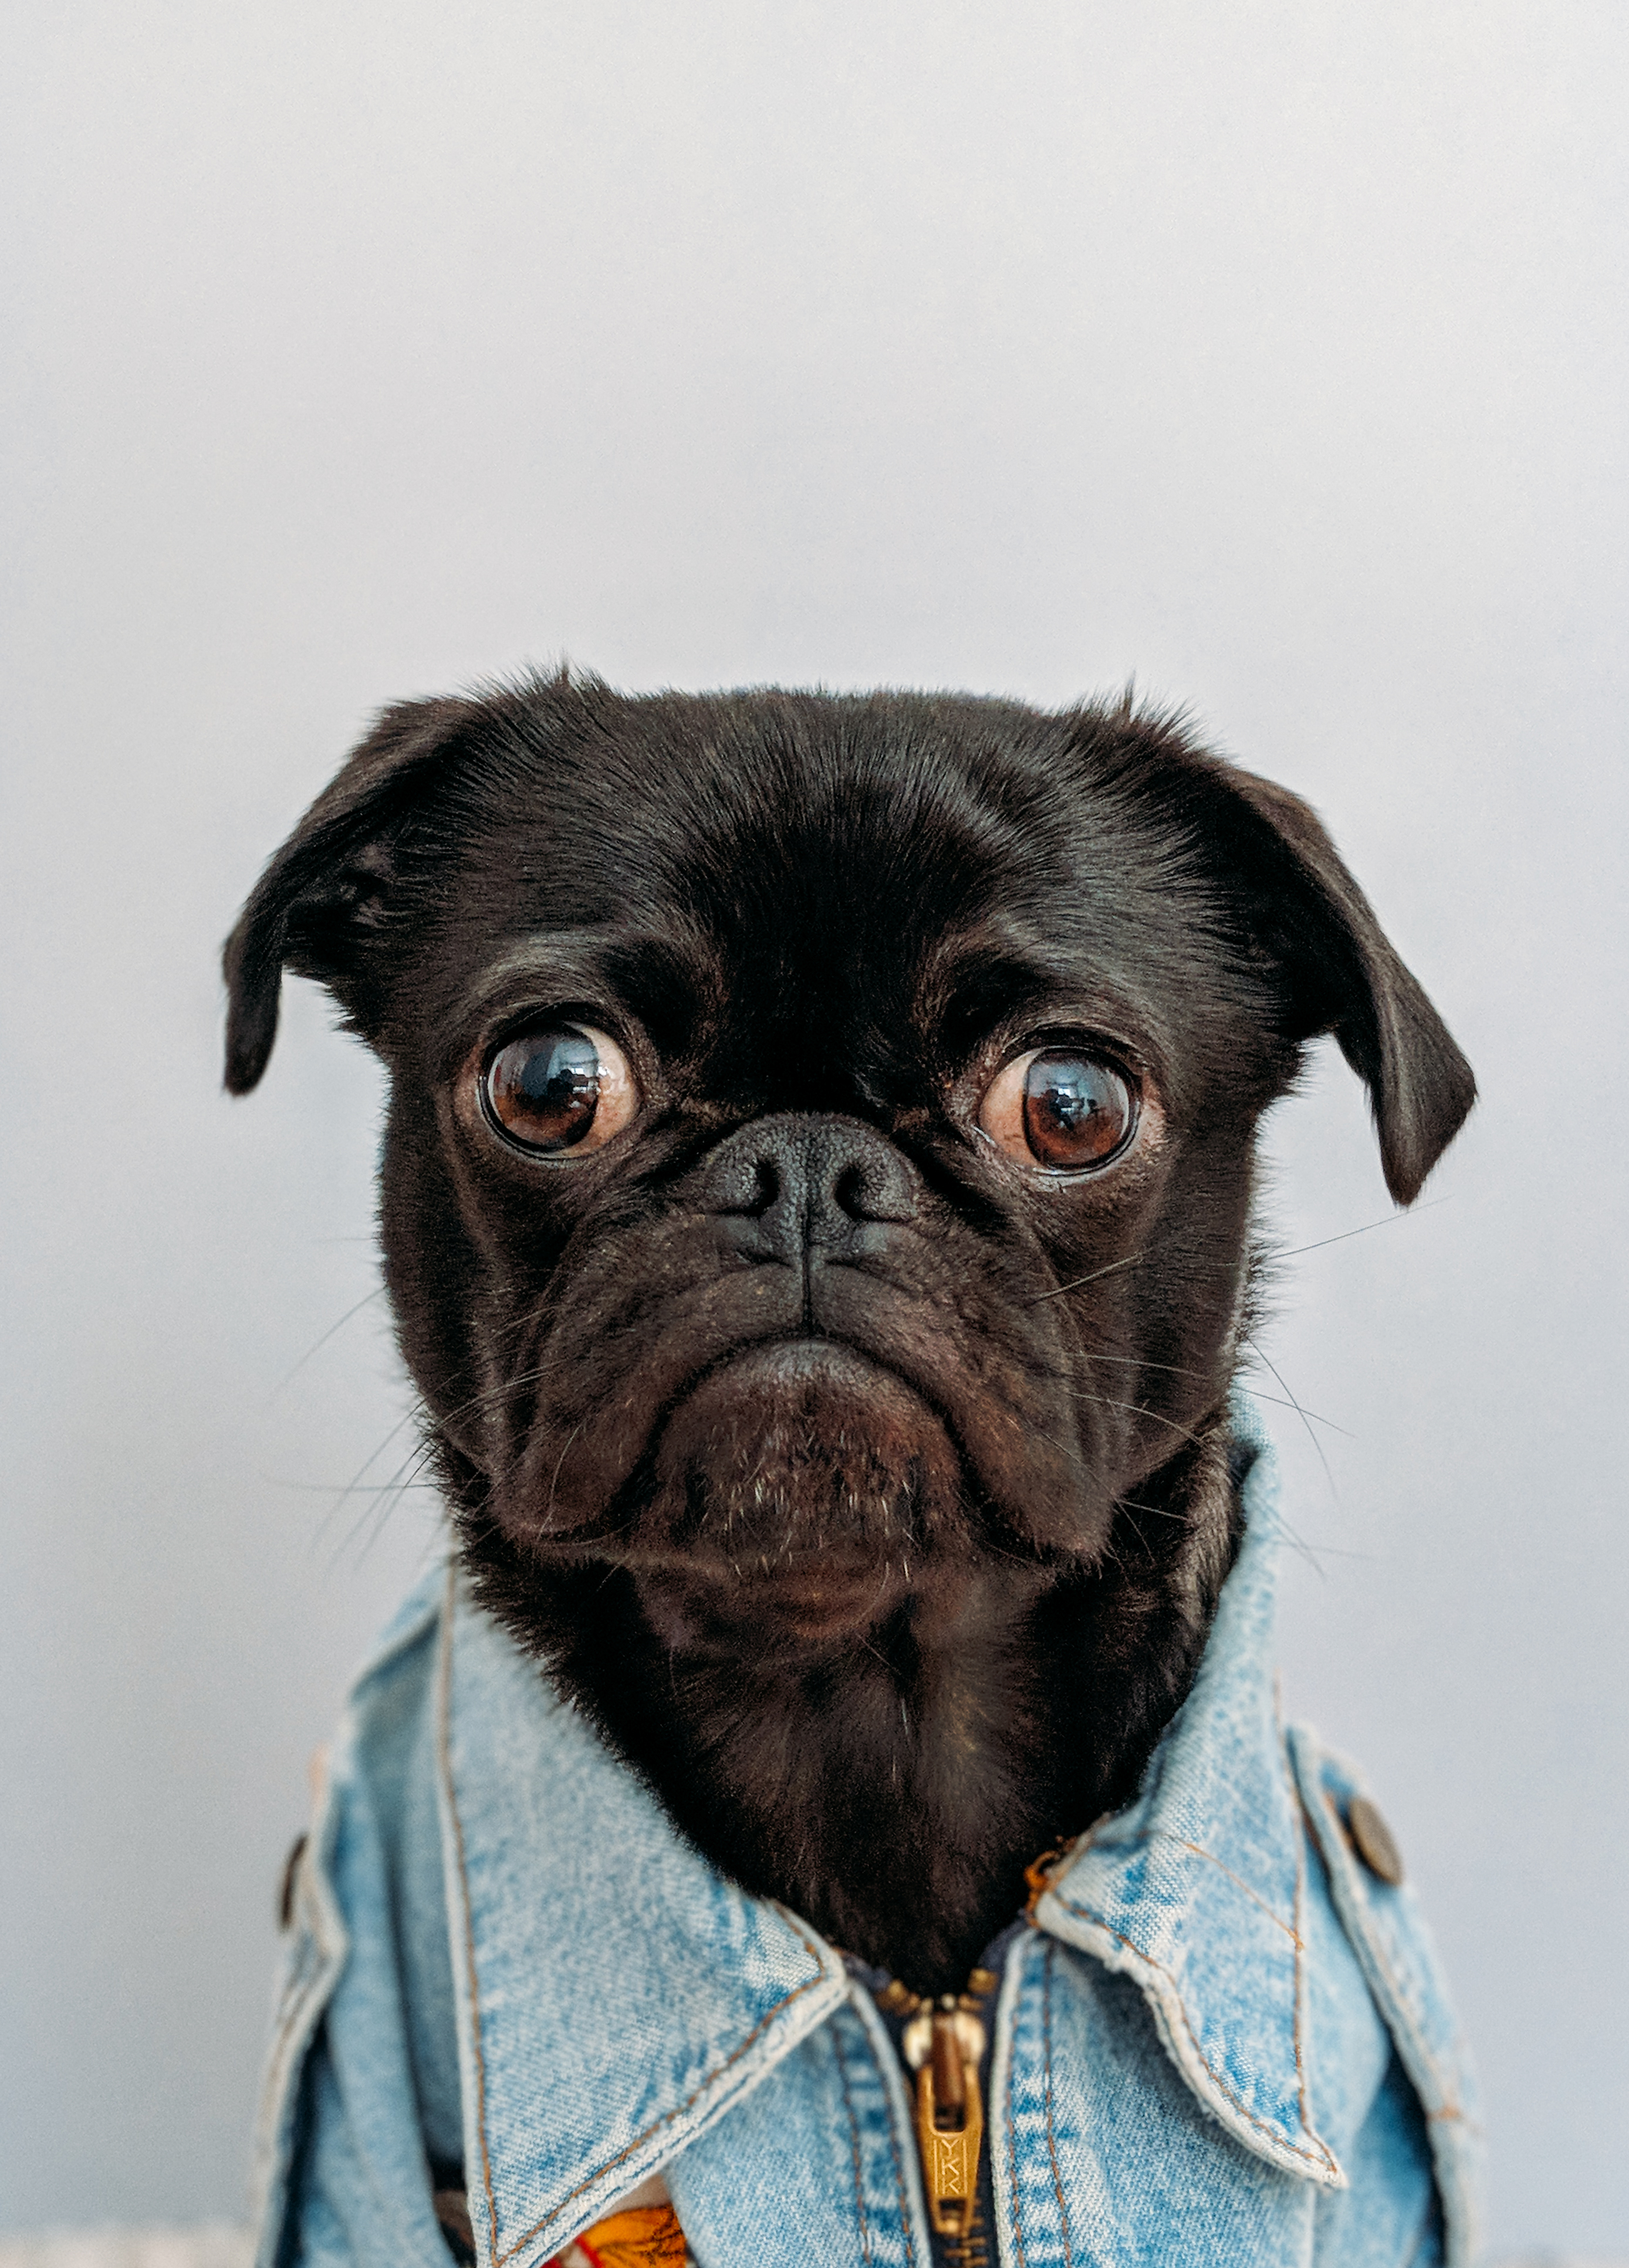 1000 Wallpapers Cute 100 Pug Pictures Download Free Images On Unsplash